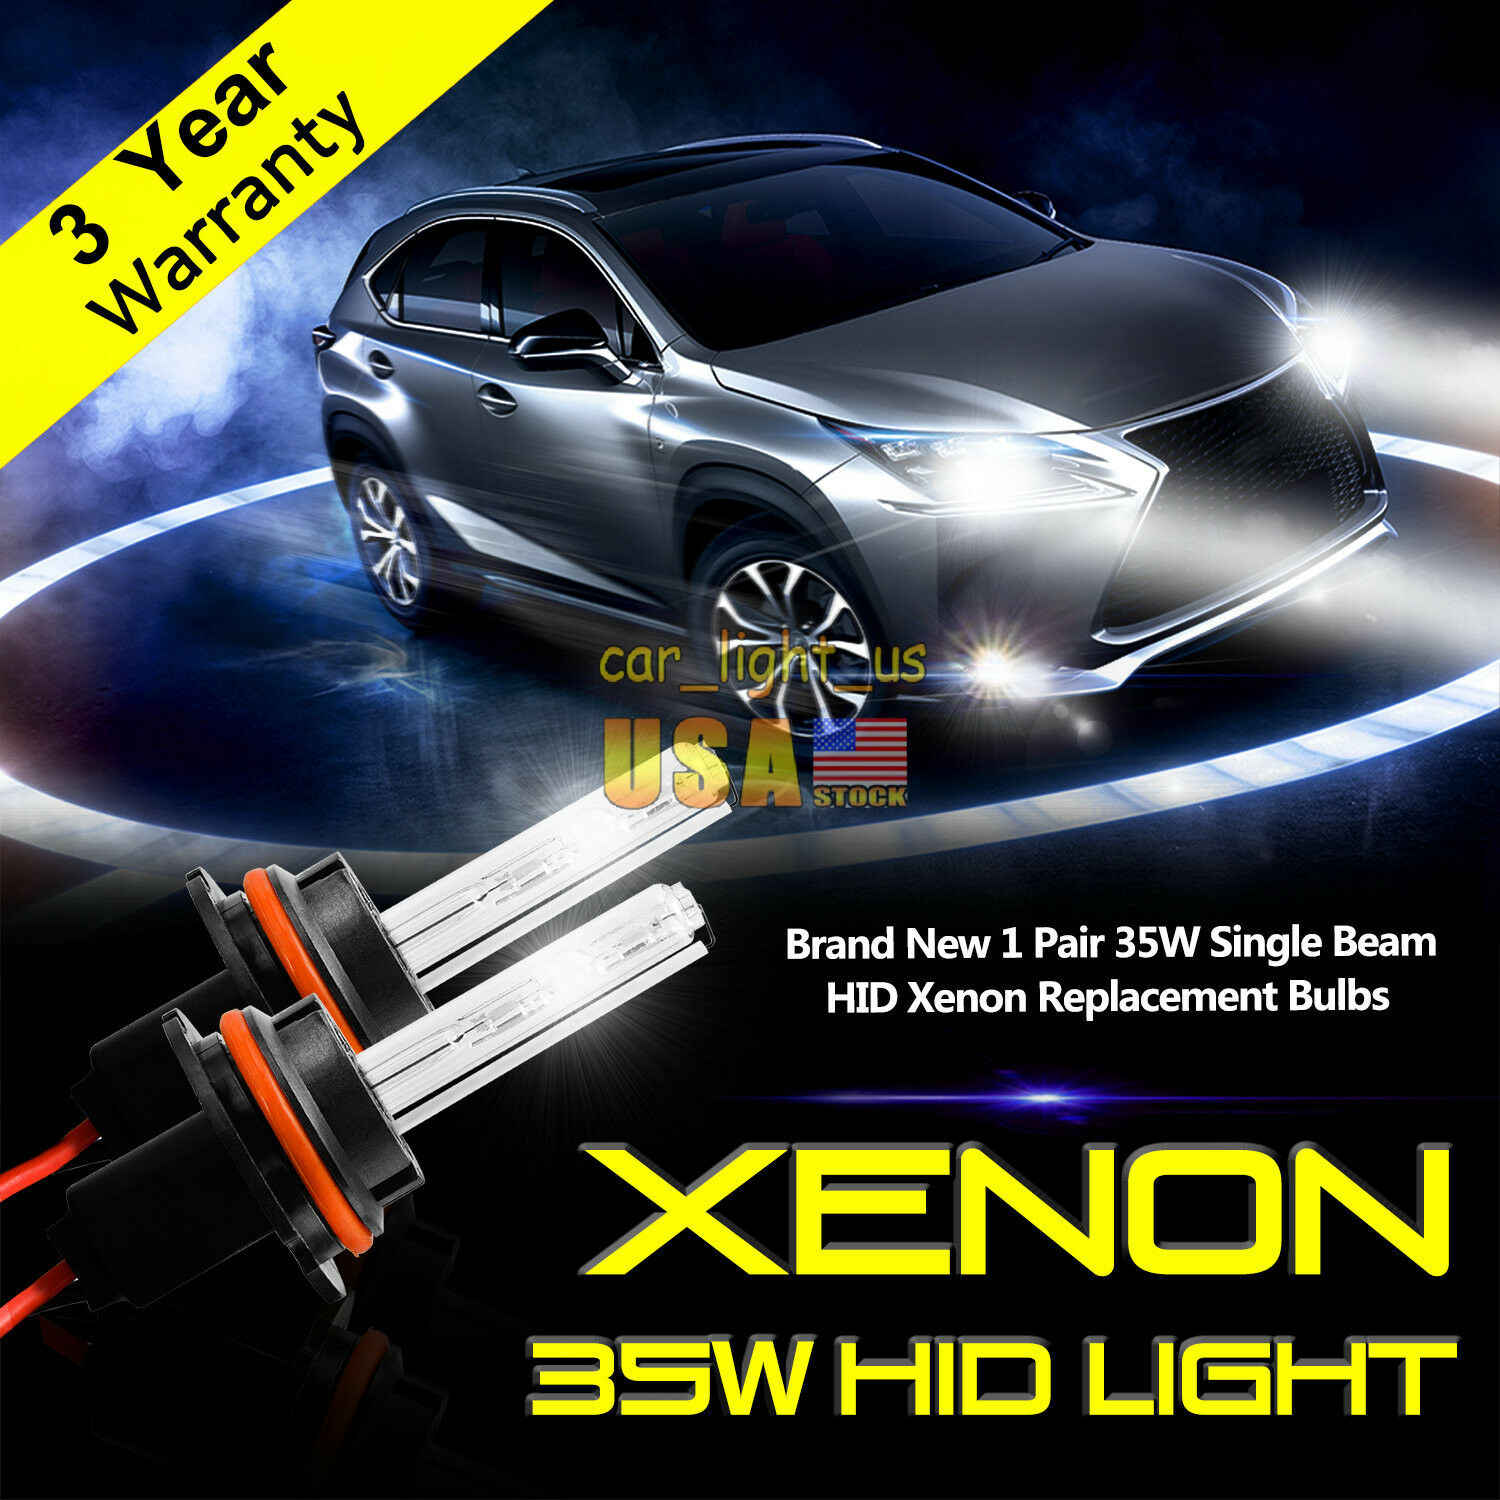 Xenon-Chevrolet 05-10 FULL HID kit h1 h3 h4 h7 h8 h11 9004 9005 9006 9007 880